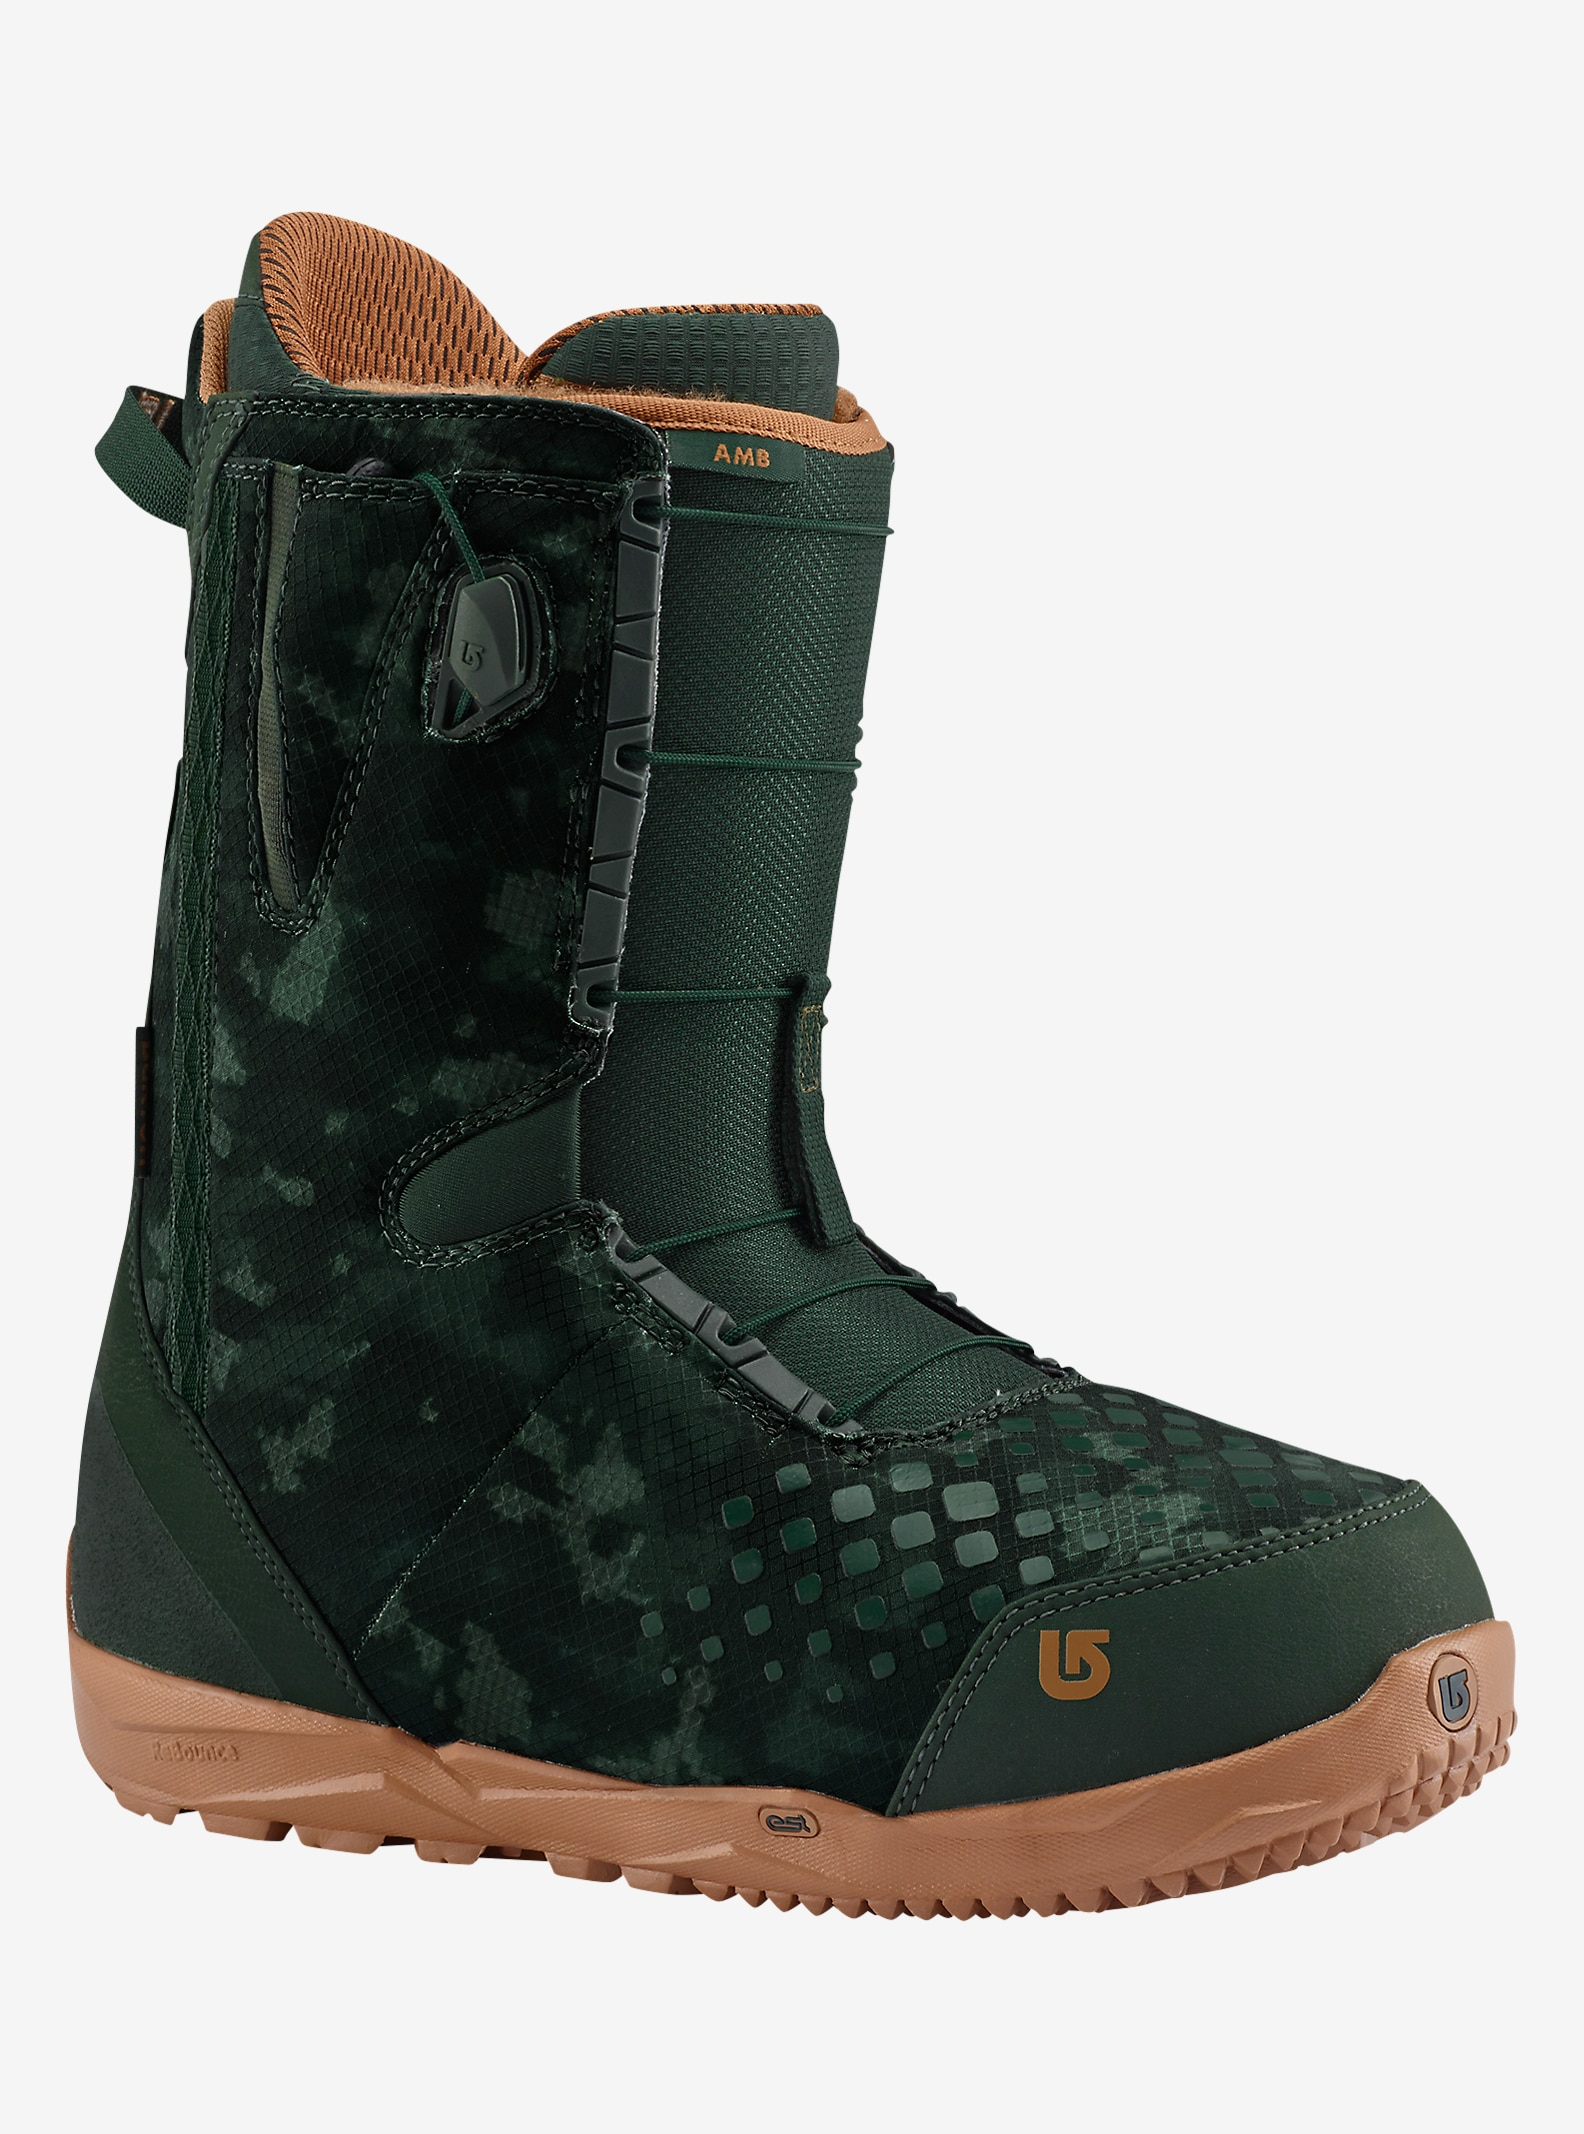 Burton AMB Snowboard Boot shown in Green / Camo